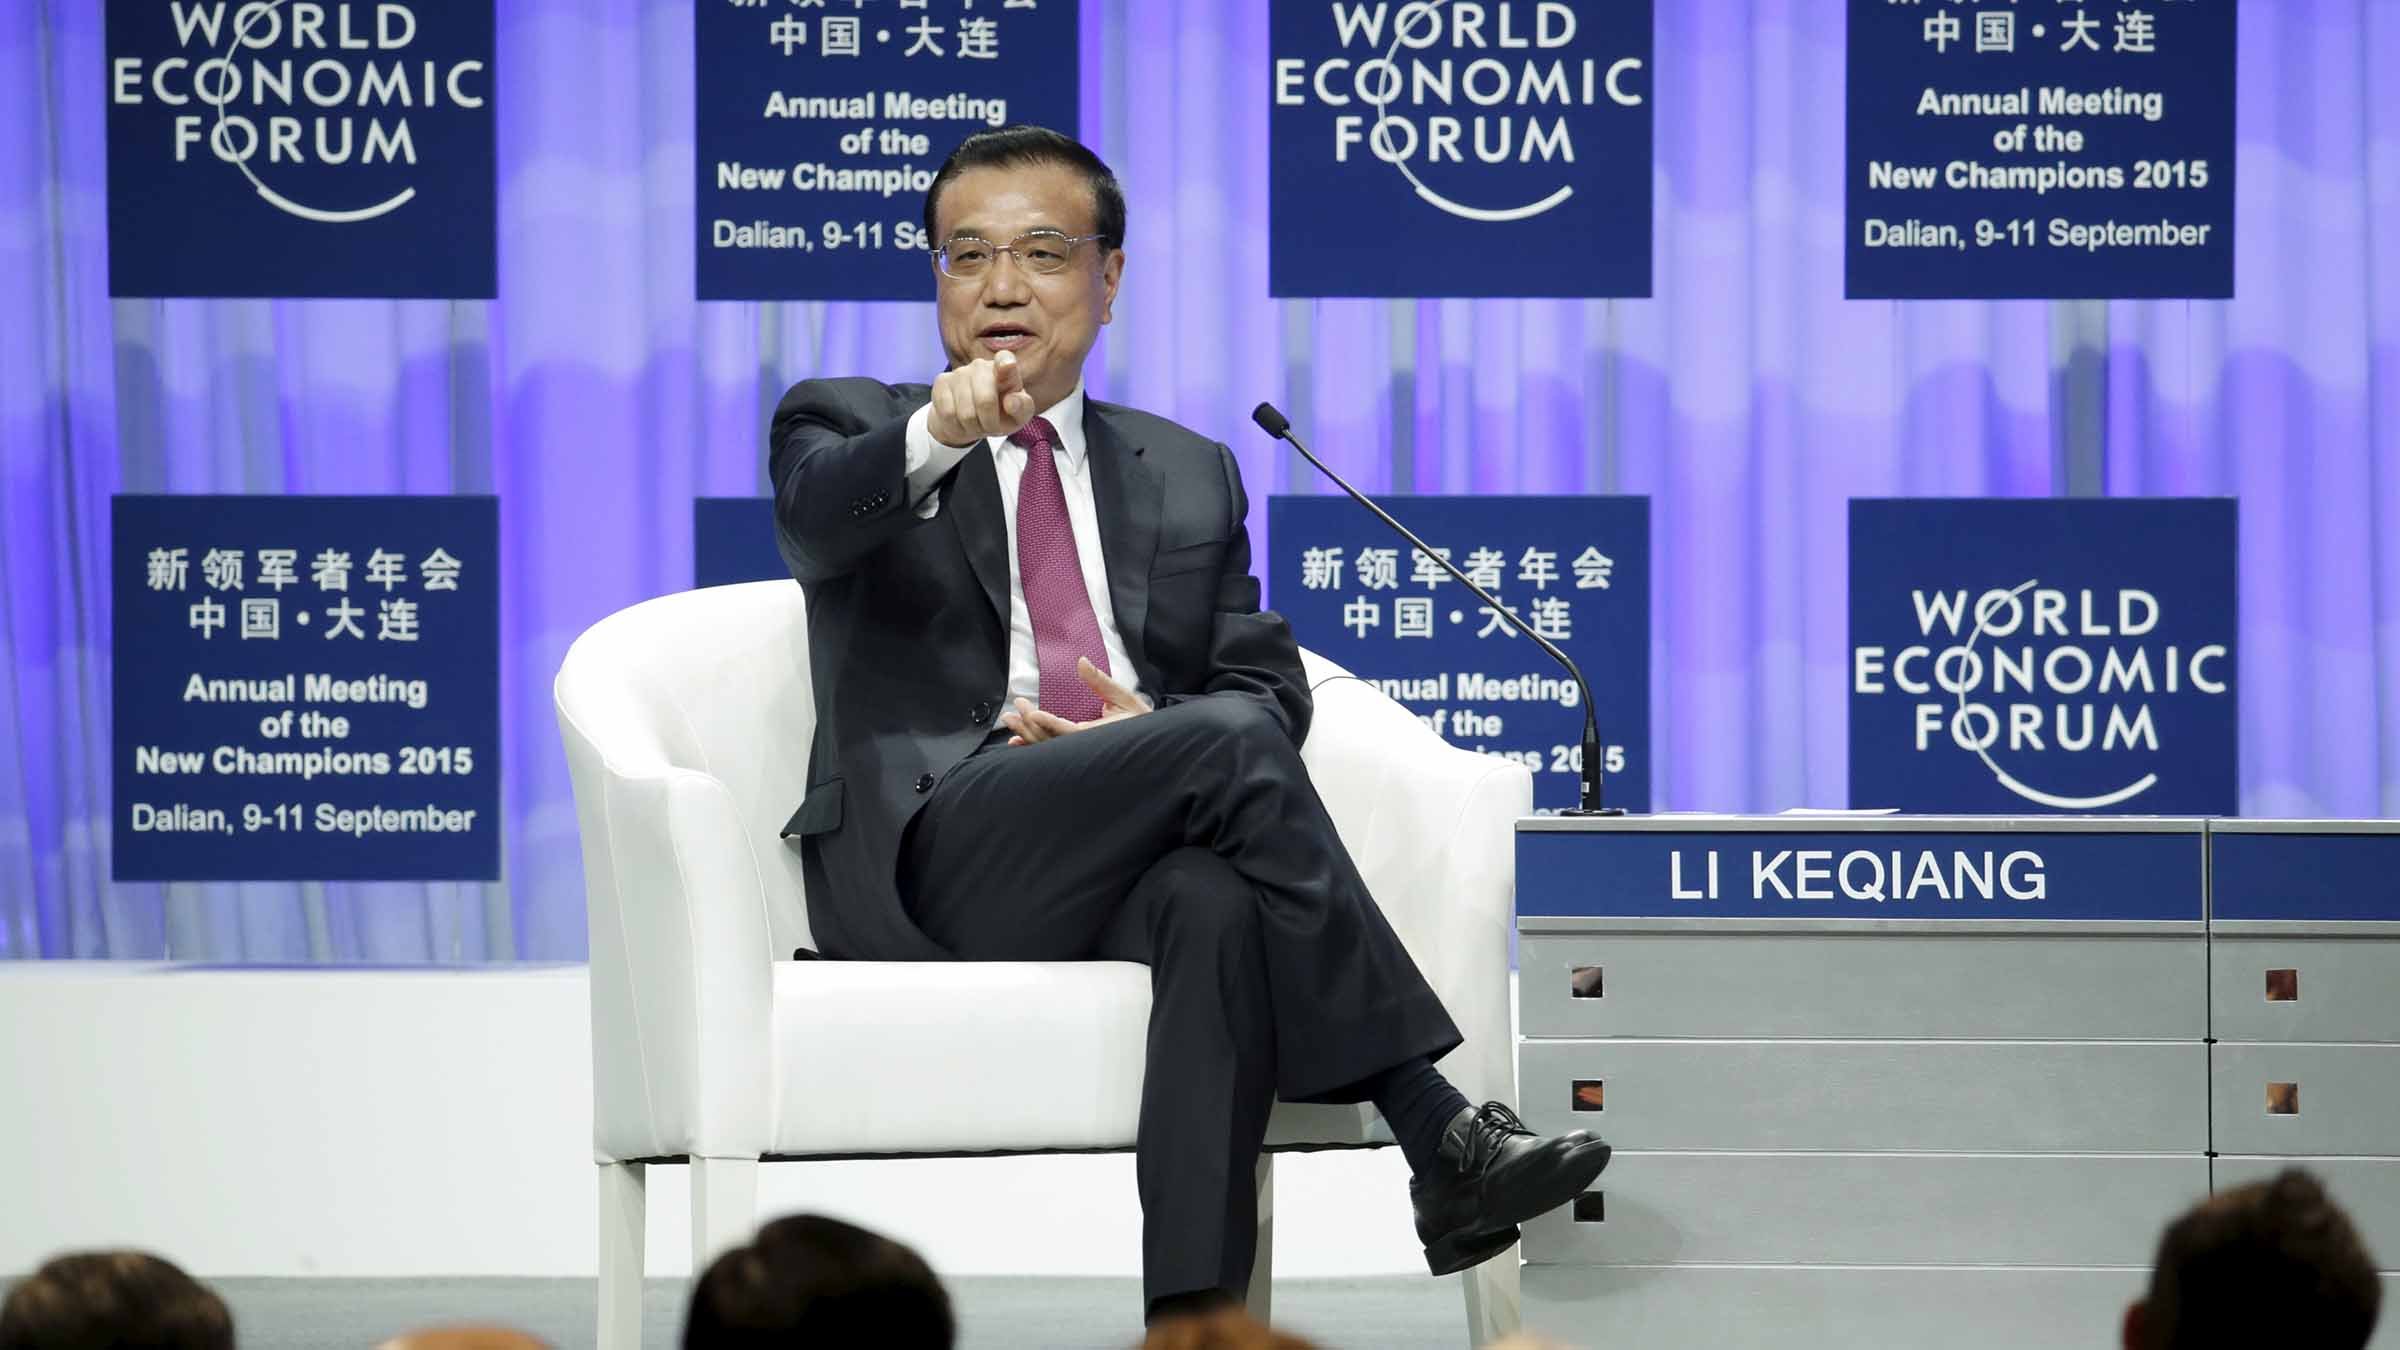 China's Premier Li speaks at the opening ceremony of the WEF Annual Meeting of the New Champions in Dalian